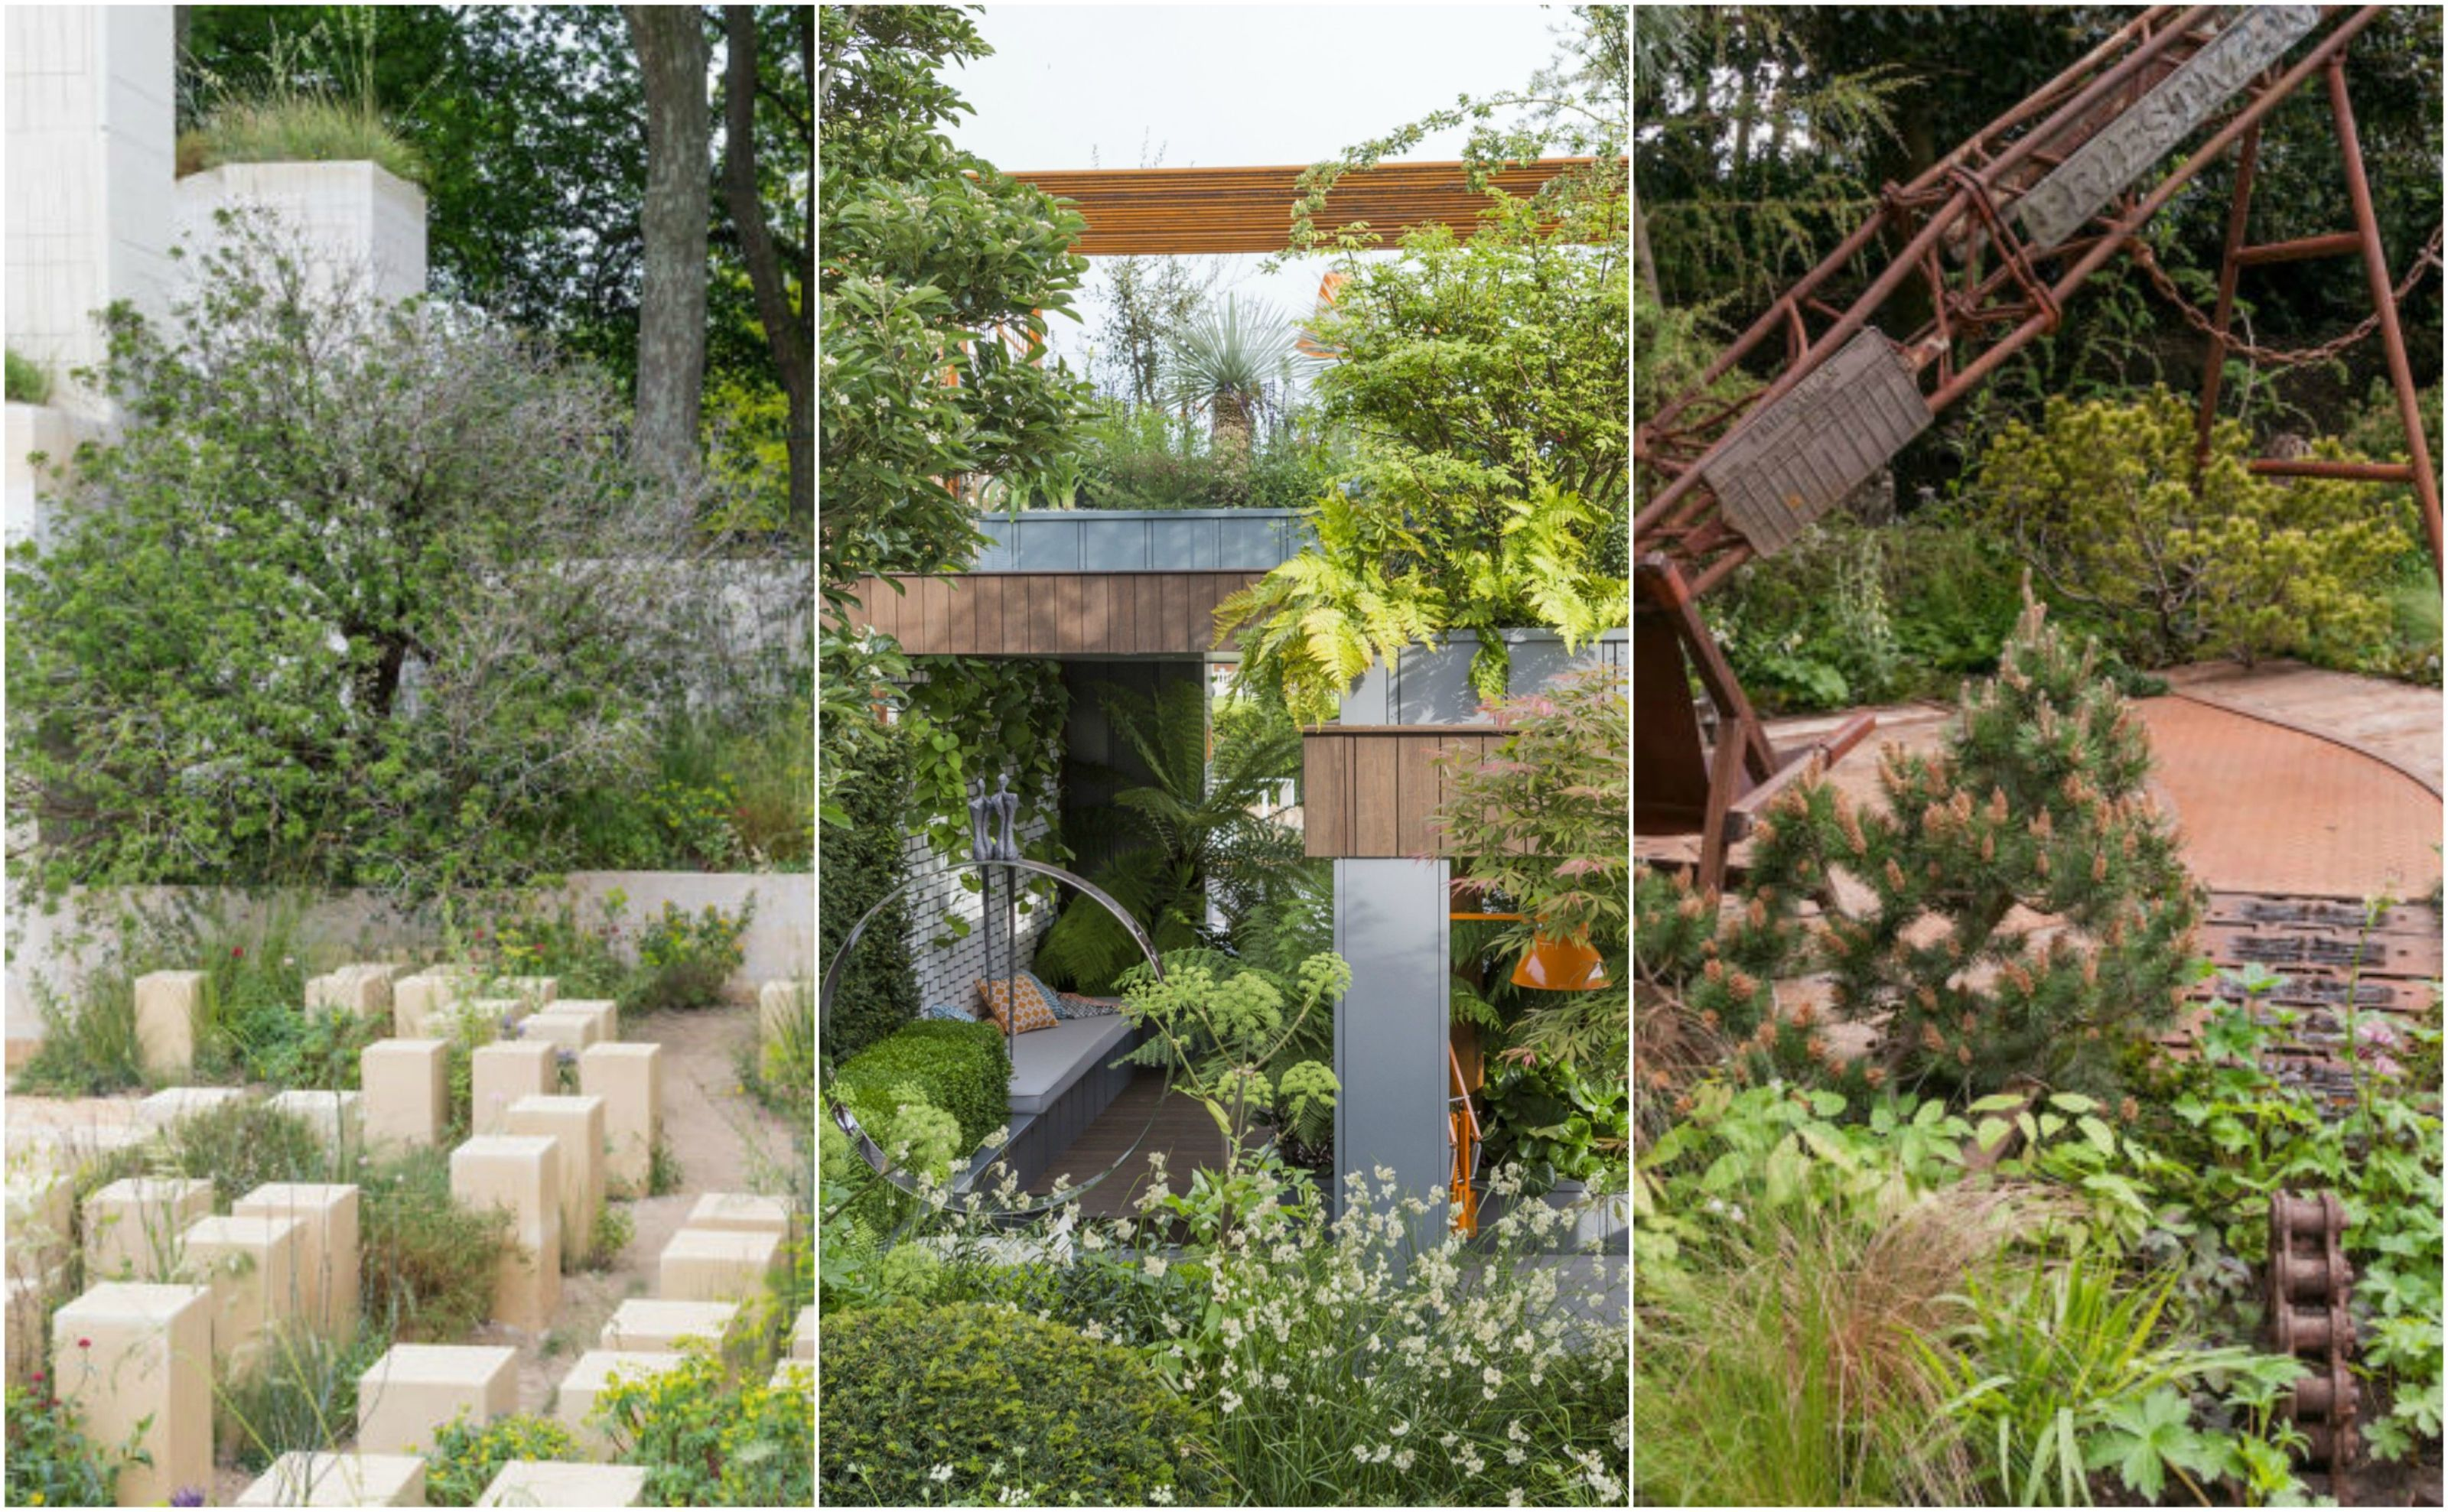 Gold Stars For Wildlife Friendly Space At RHS Chelsea